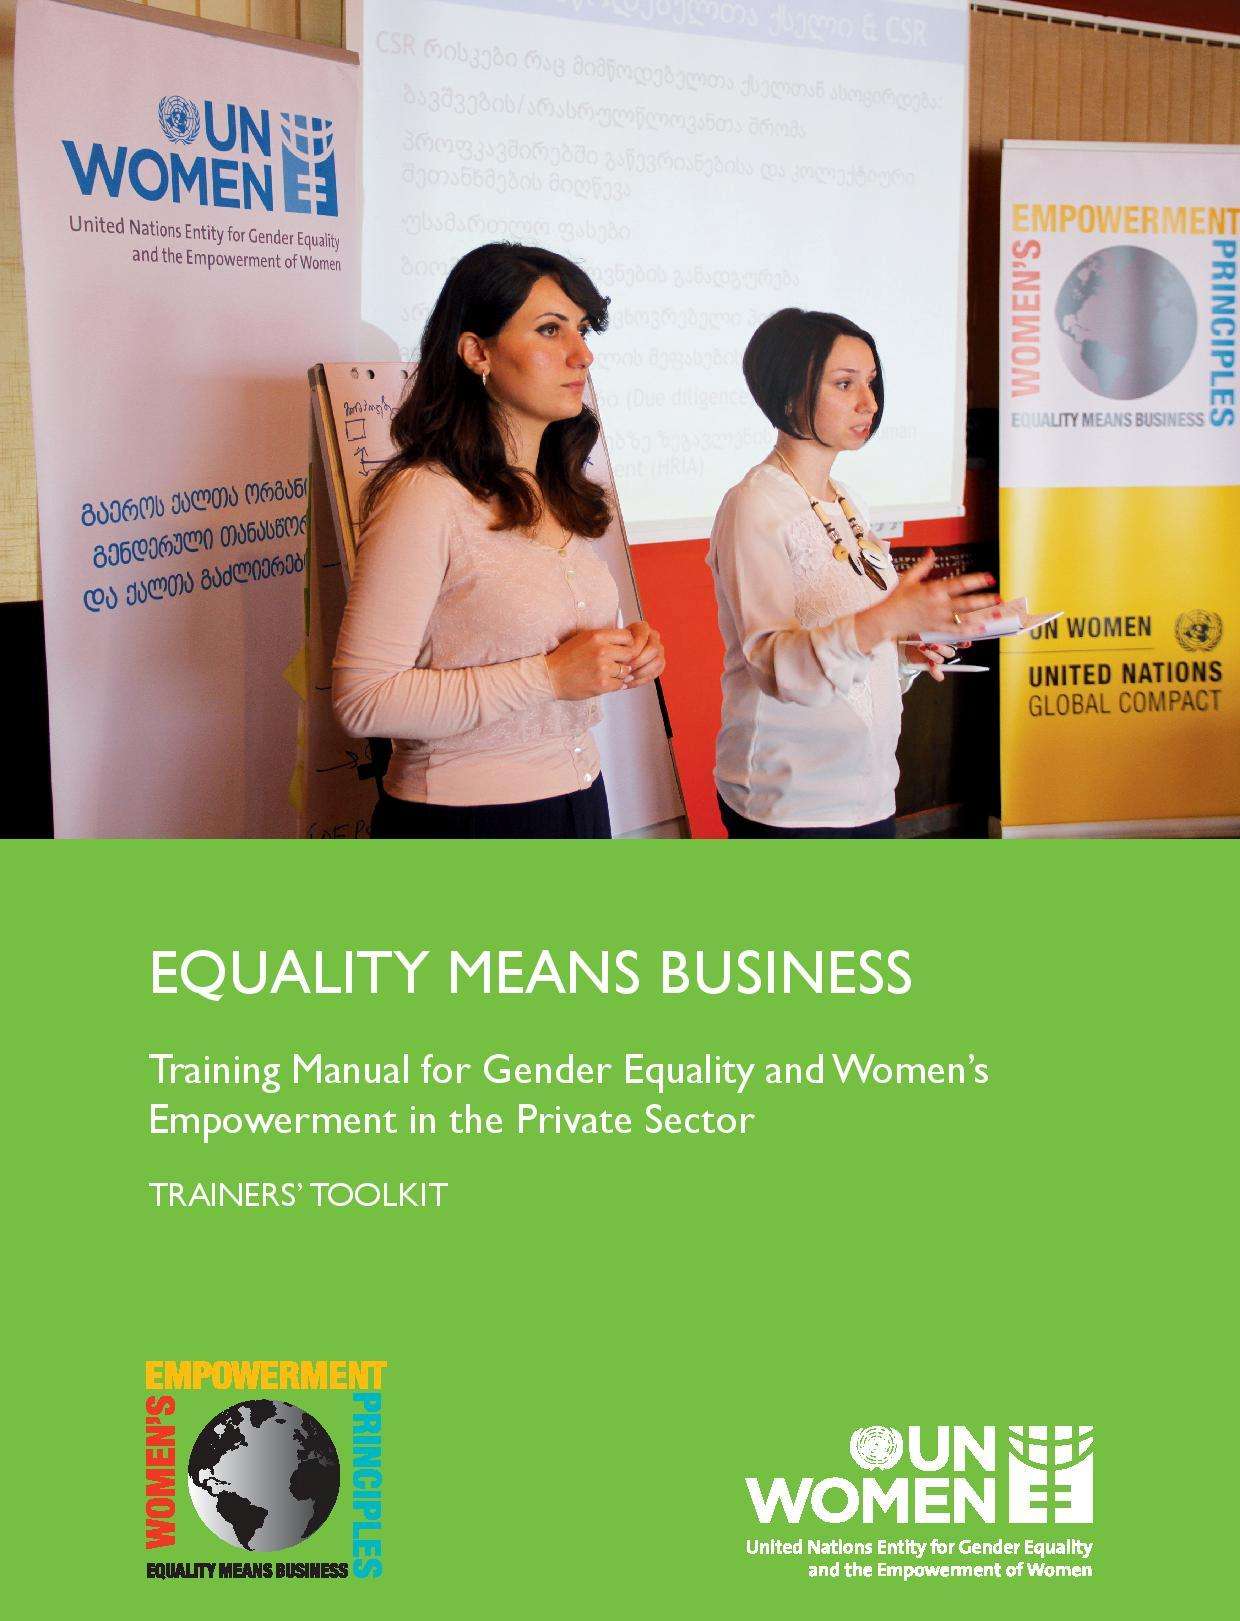 Equality Means Business: Training Manual for Gender Equality and Women's Empowerment in the Private Sector. Trainers' Toolkit